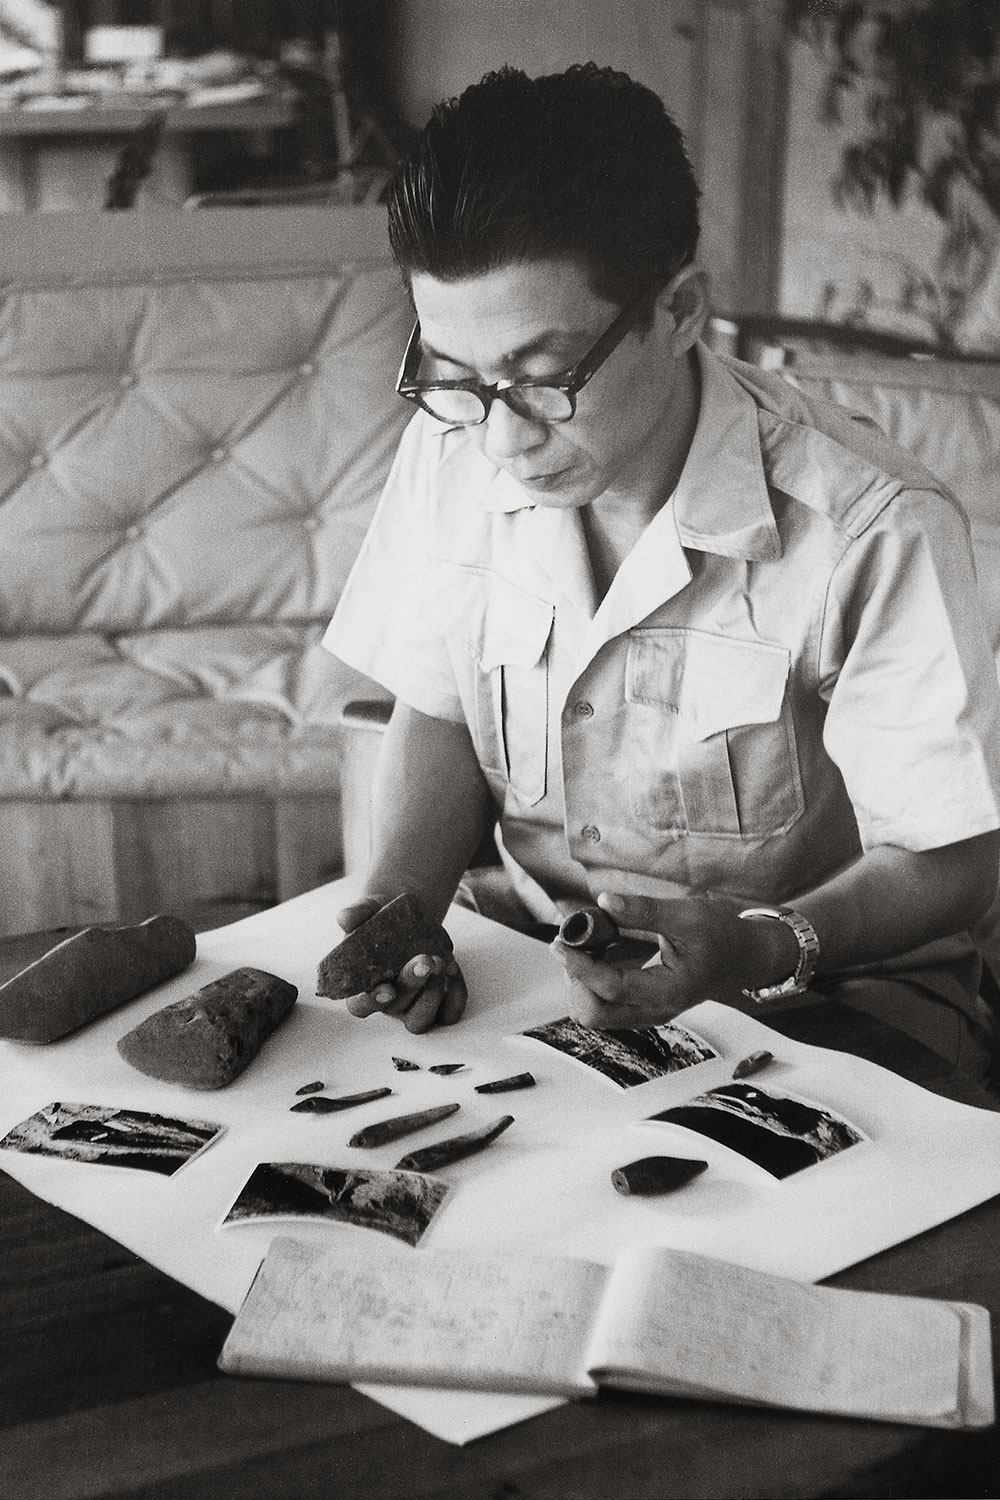 Black and white image of an asian man with glasses examining artifacts.